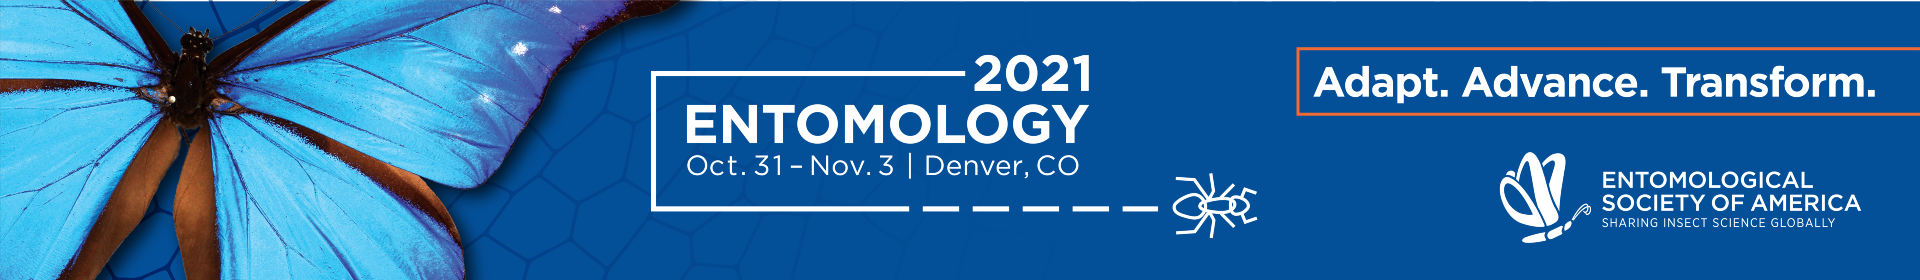 Entomology 2021 - Papers and Posters Event Banner